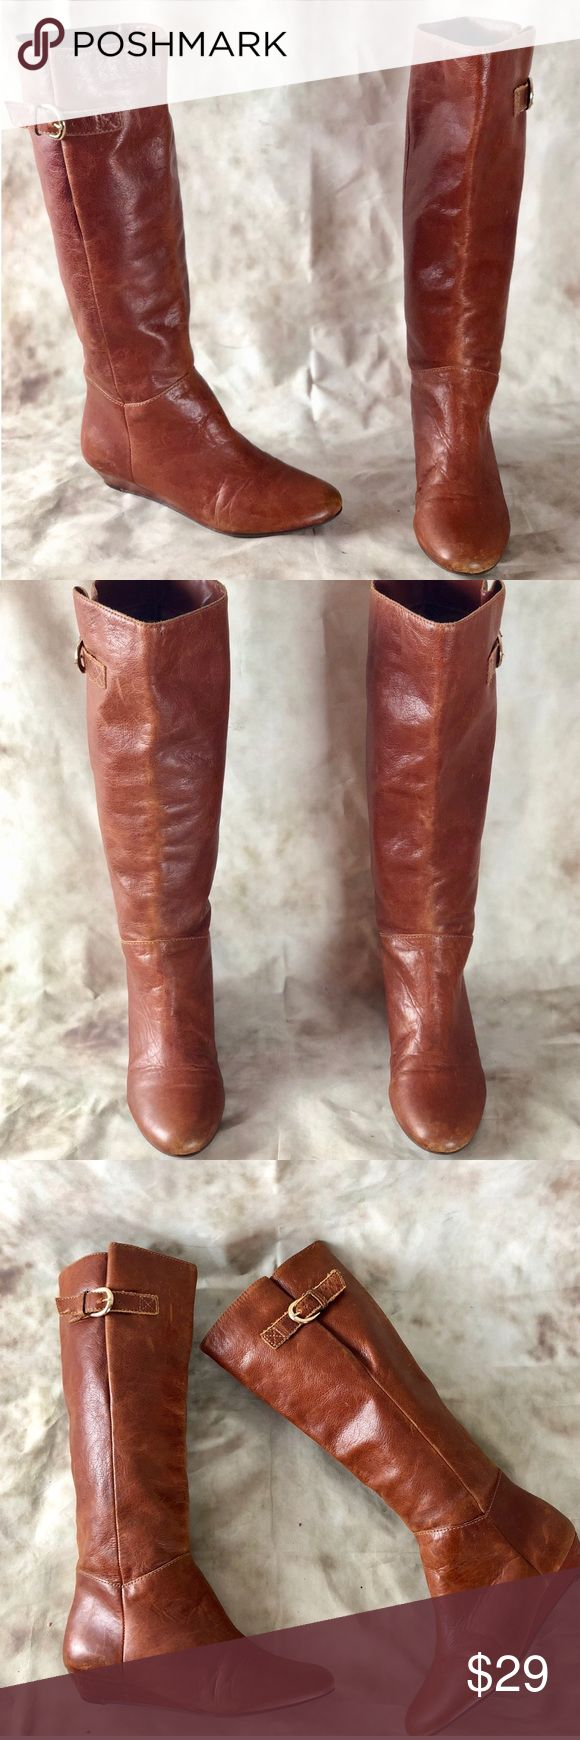 "Steve Madden ""Intyce"" Cognac Wedge Boots Pre owned, but plenty of wear left! Classic Steve Madden boots in Cognac! Slight wedge, faux leather upper. Boot shows signs at the front and at the back heel of boots (please refer to photos) Steve Madden Shoes Over the Knee Boots"